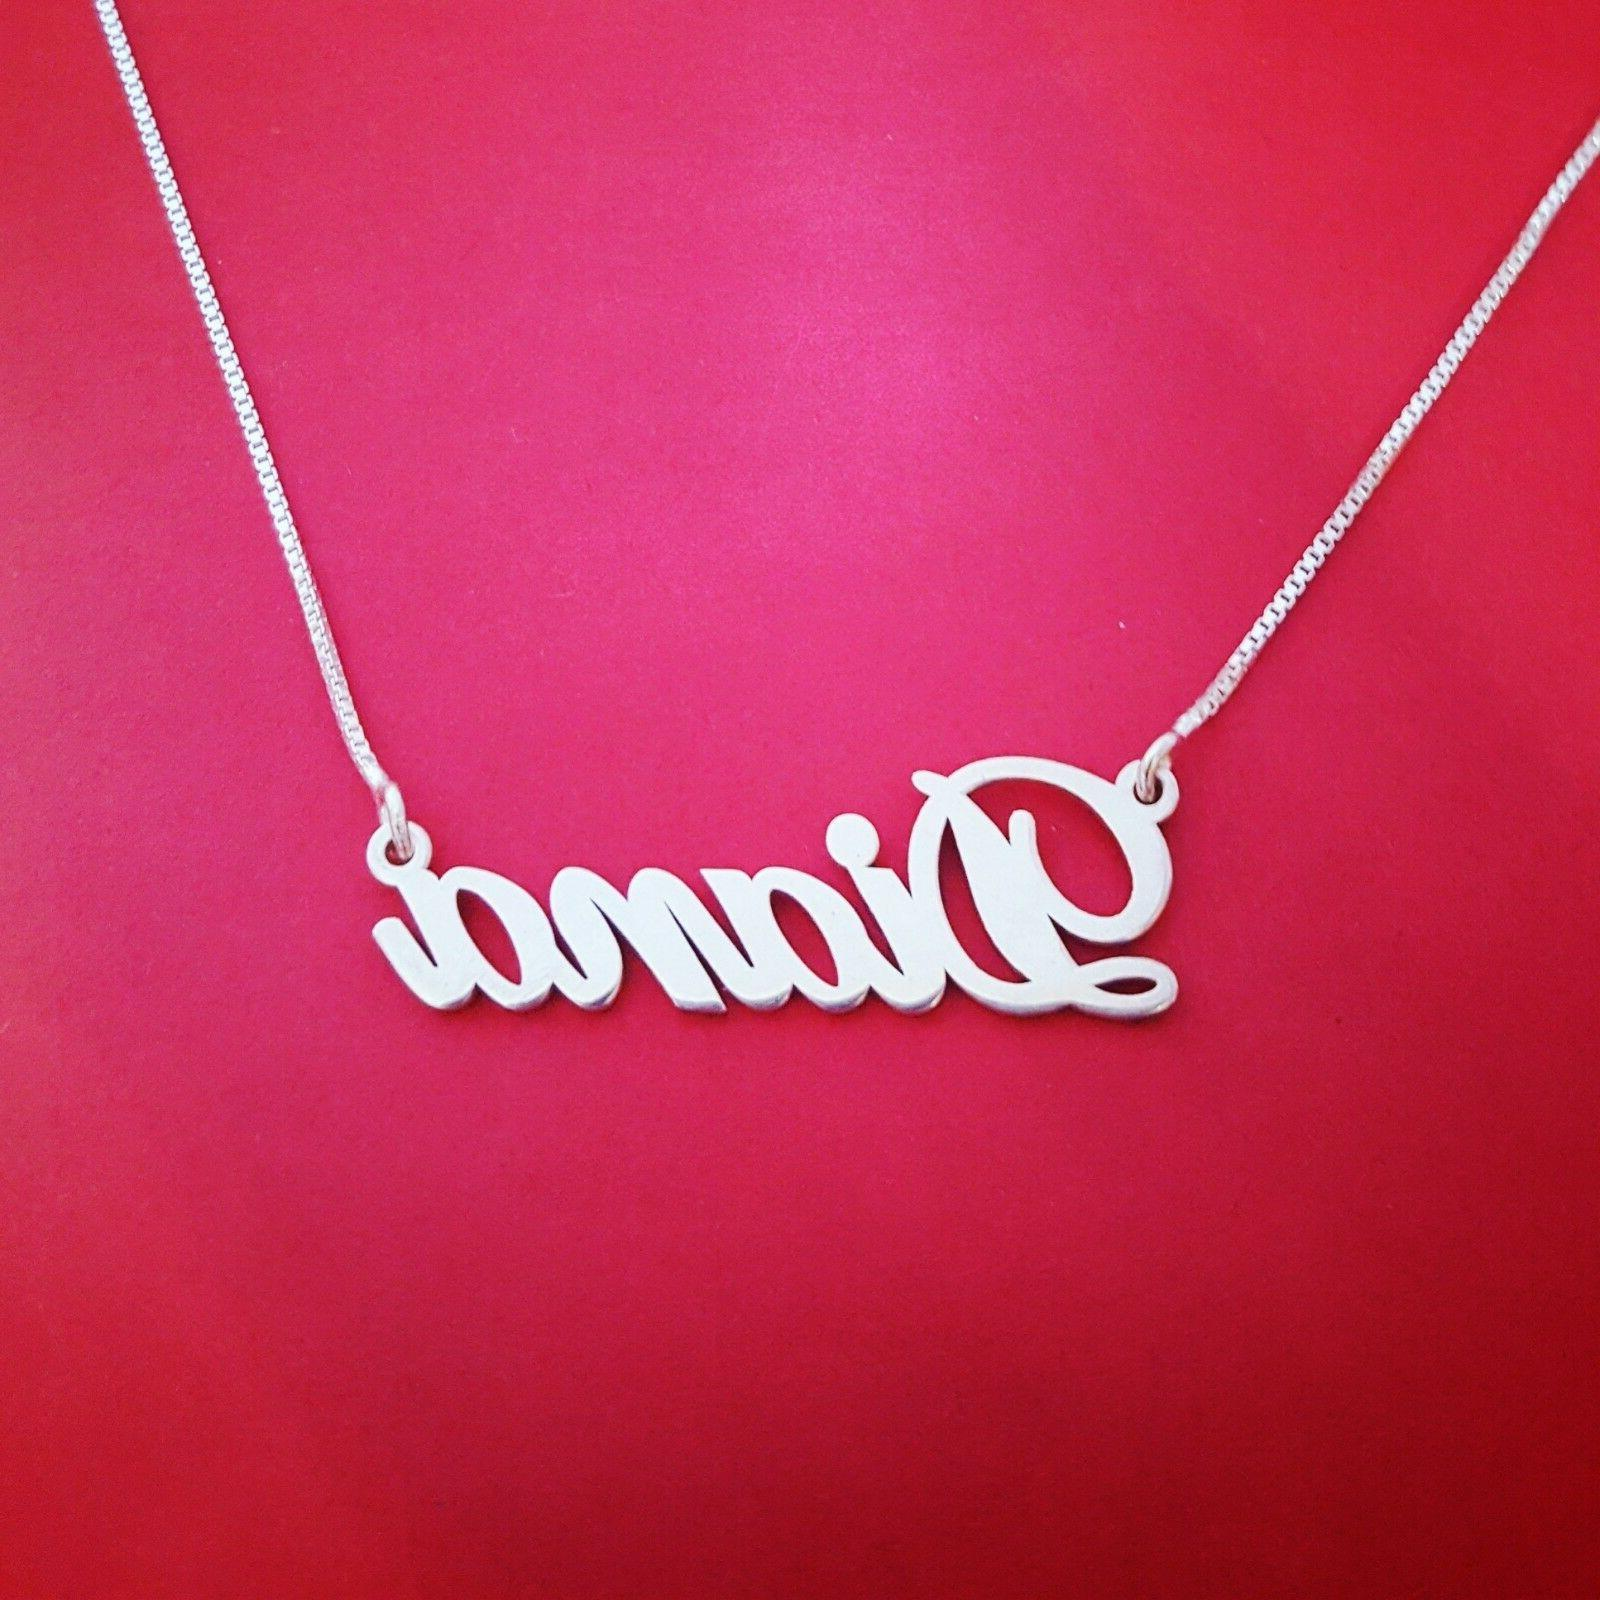 14k Real Necklace Name Necklaces / Name!